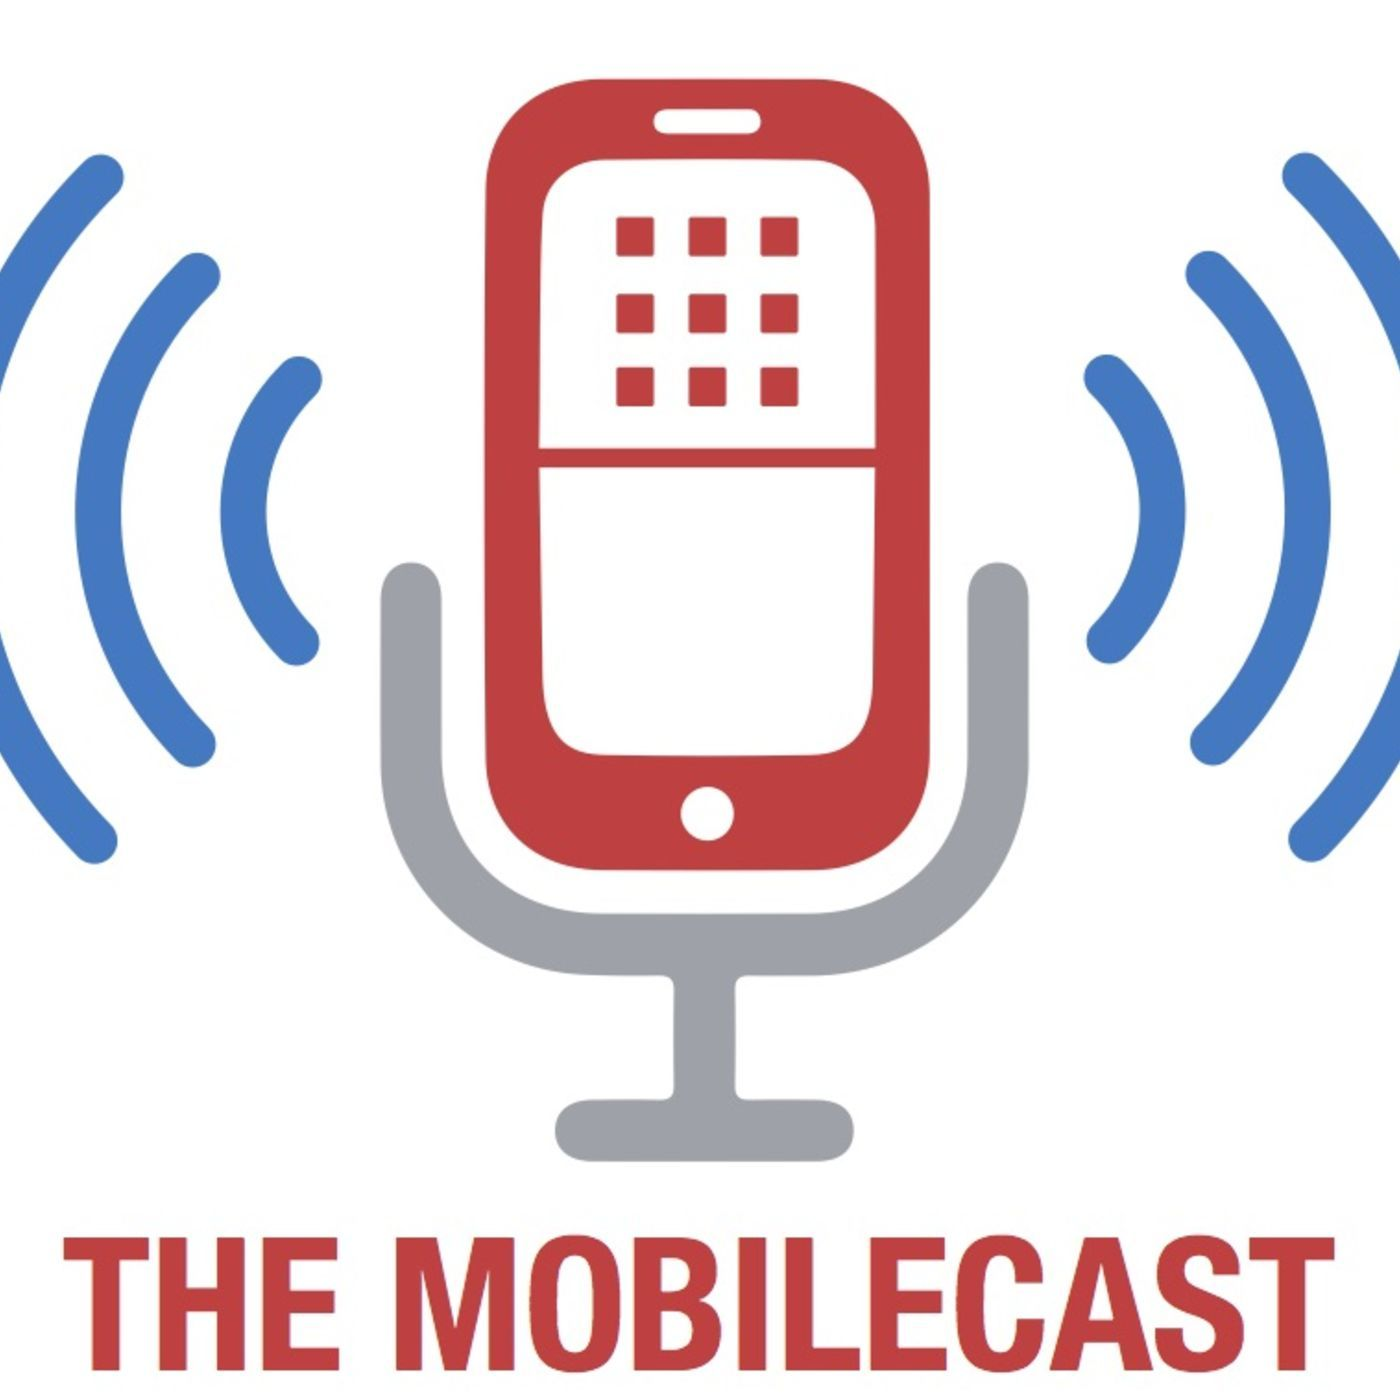 The Mobilecast #309 – S3 Ep09 Alvaro Pombo from Prontoforms.mp3